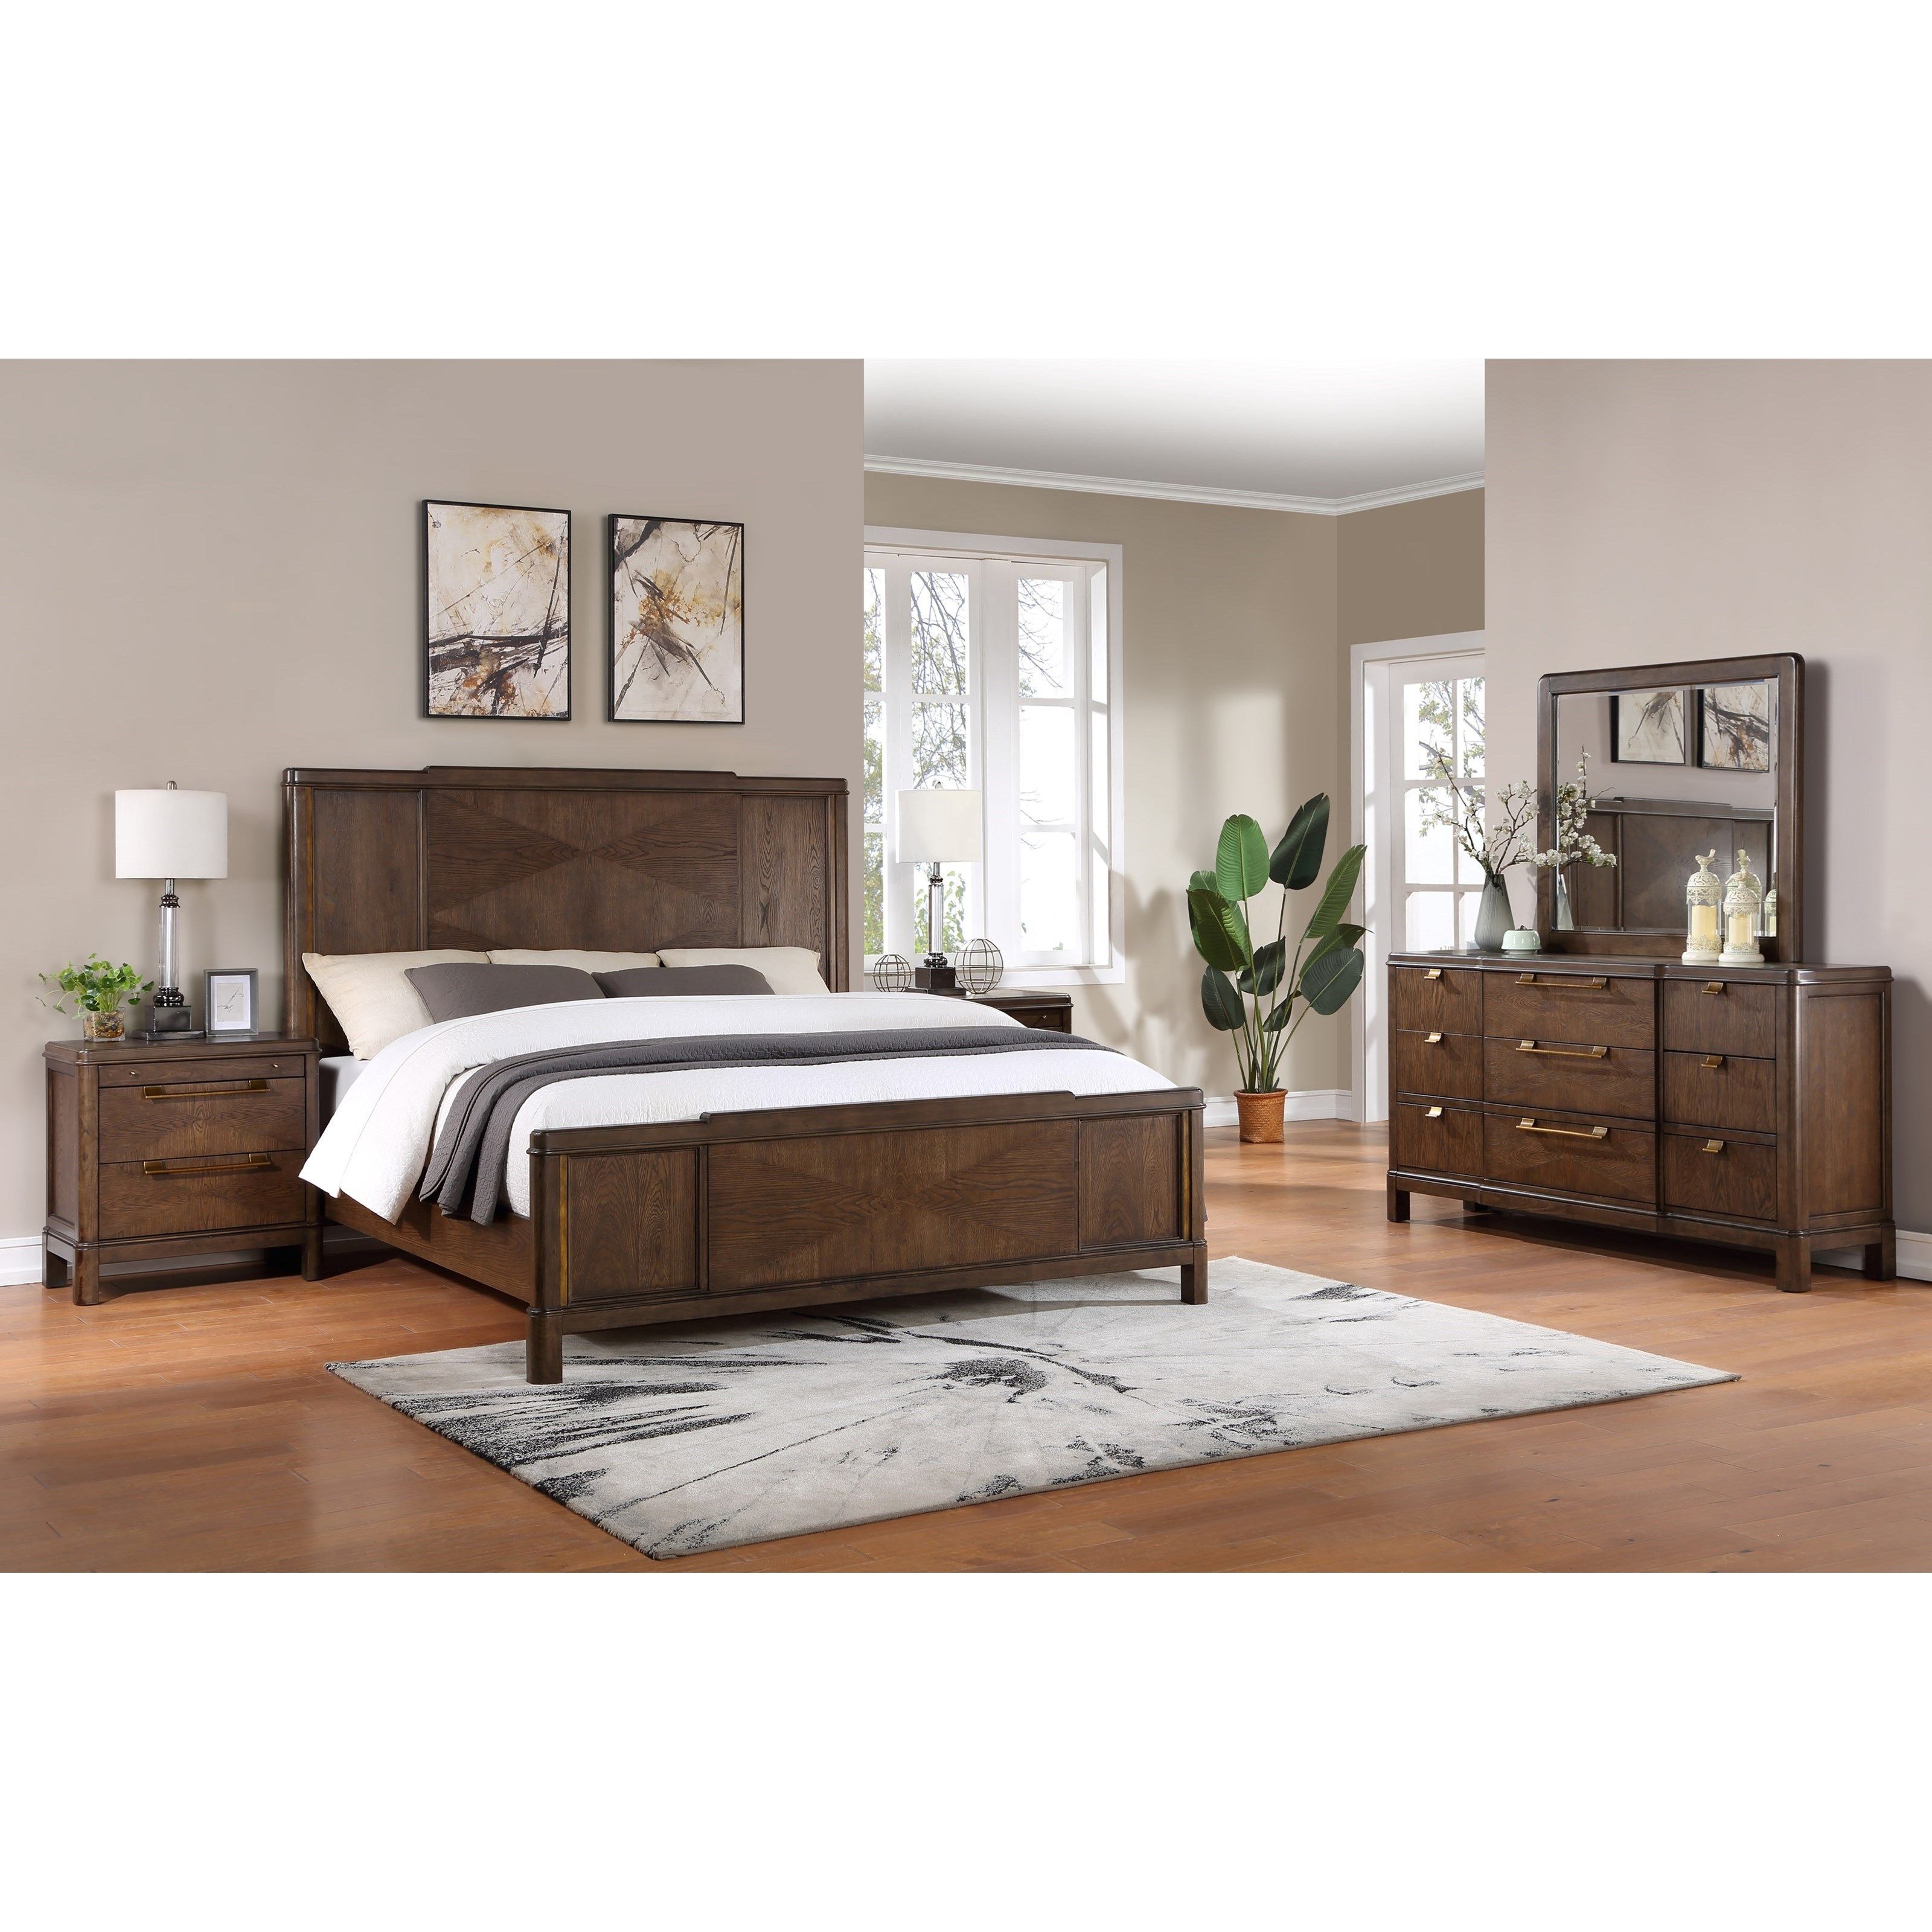 Milan King Bedroom Group by Steve Silver at Northeast Factory Direct